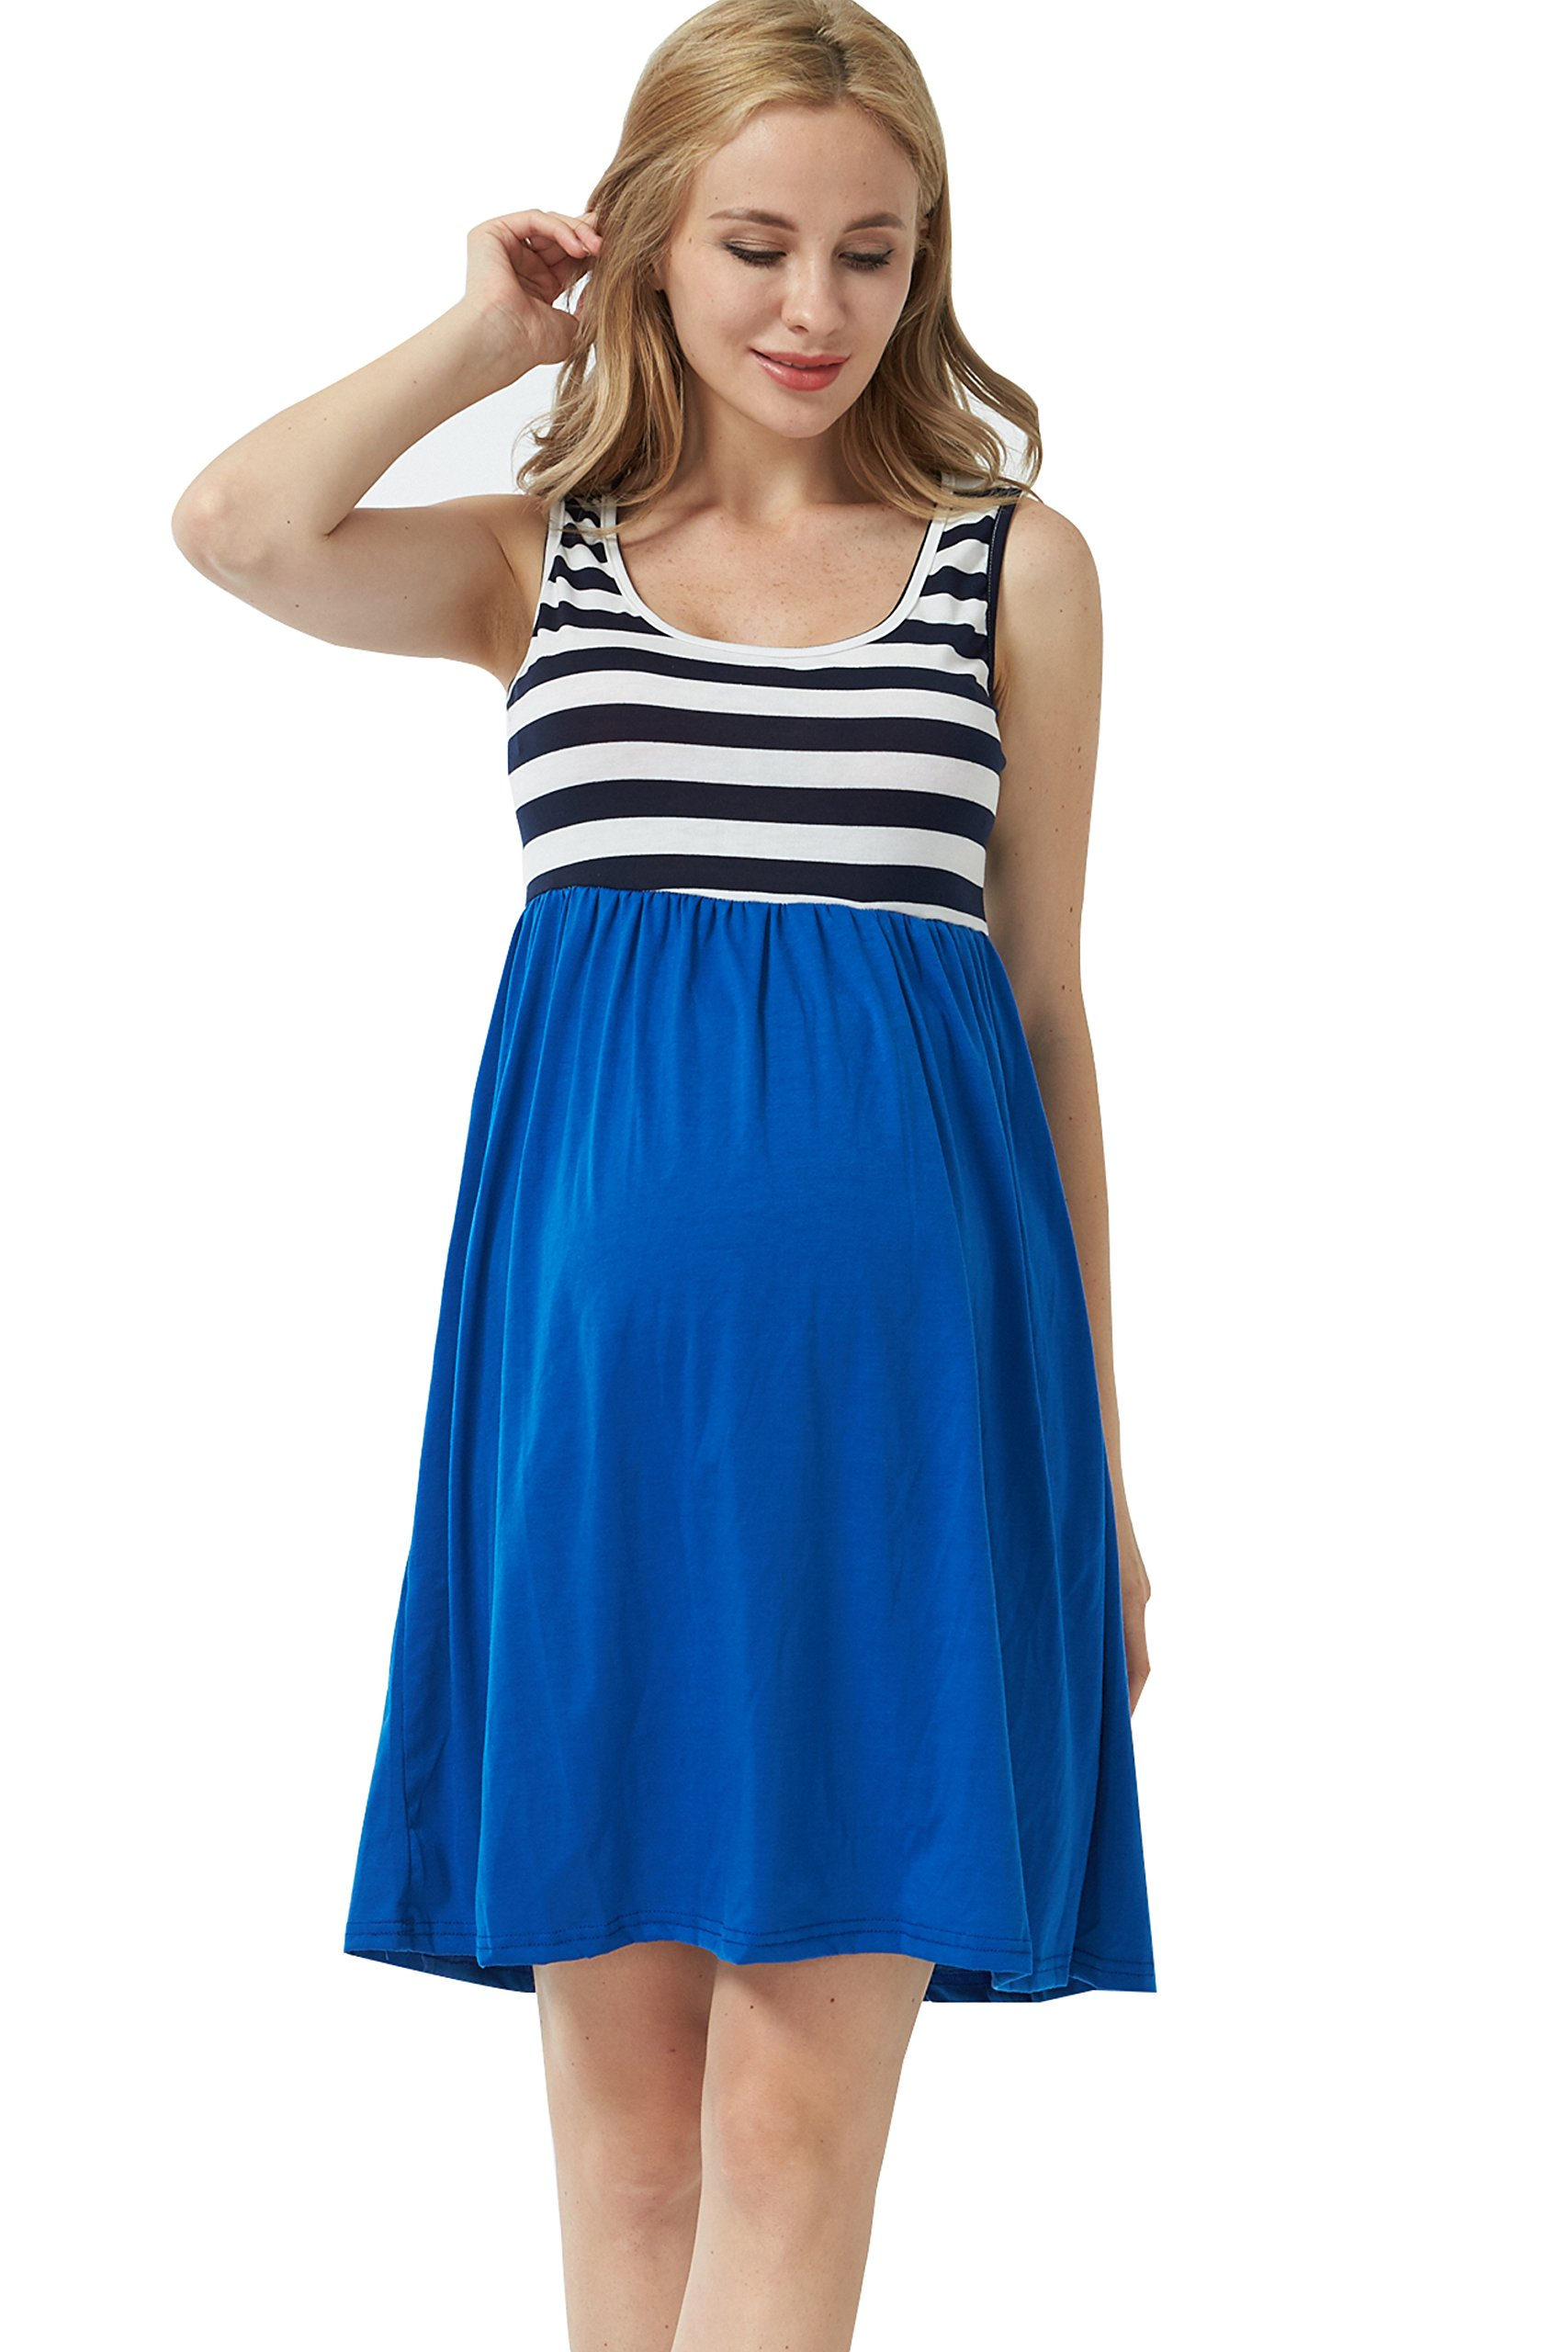 MANNEW Maternity Maxi Dress Pregnancy Tank Tops Knee Length Stitching Color Block Stripe Skirt (Blue, X-Large)